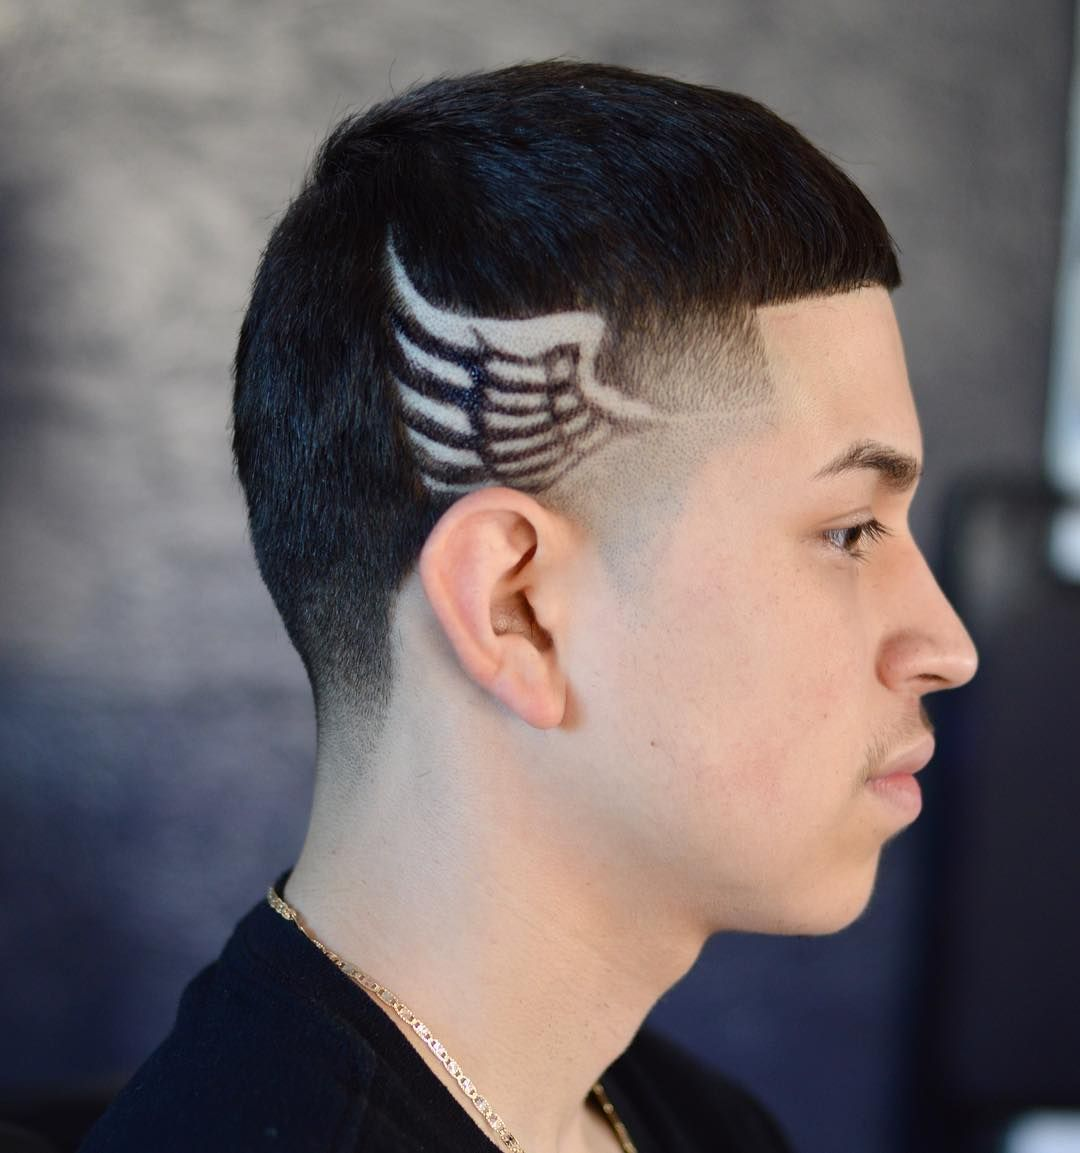 Best mens haircut las vegas gansito barber gansitobarber on pinterest